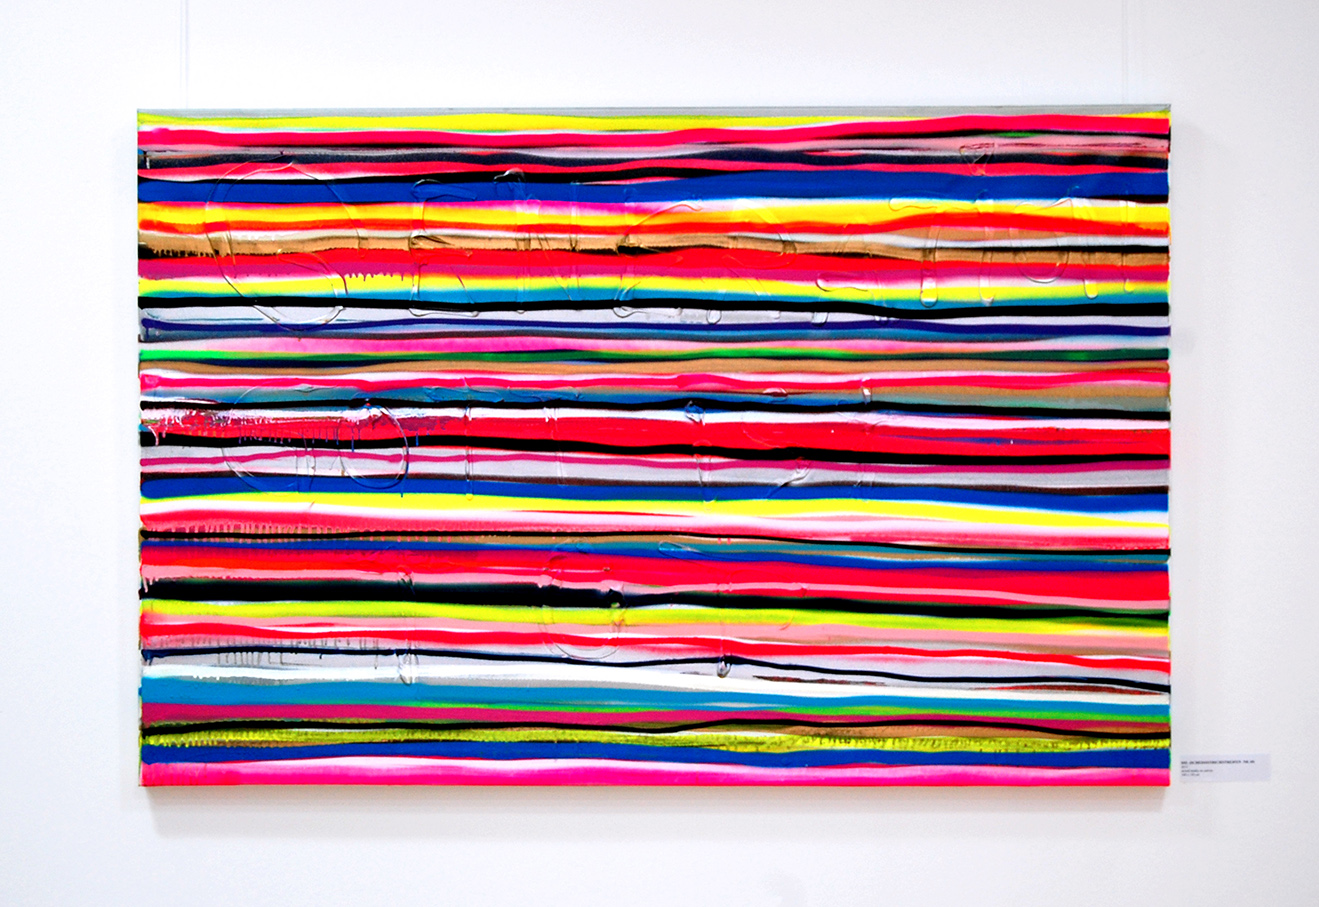 SSS (SCHEISSSTRICHERSTREIFEN NR 10), 2012, mixed media on canvas, 100x150cm